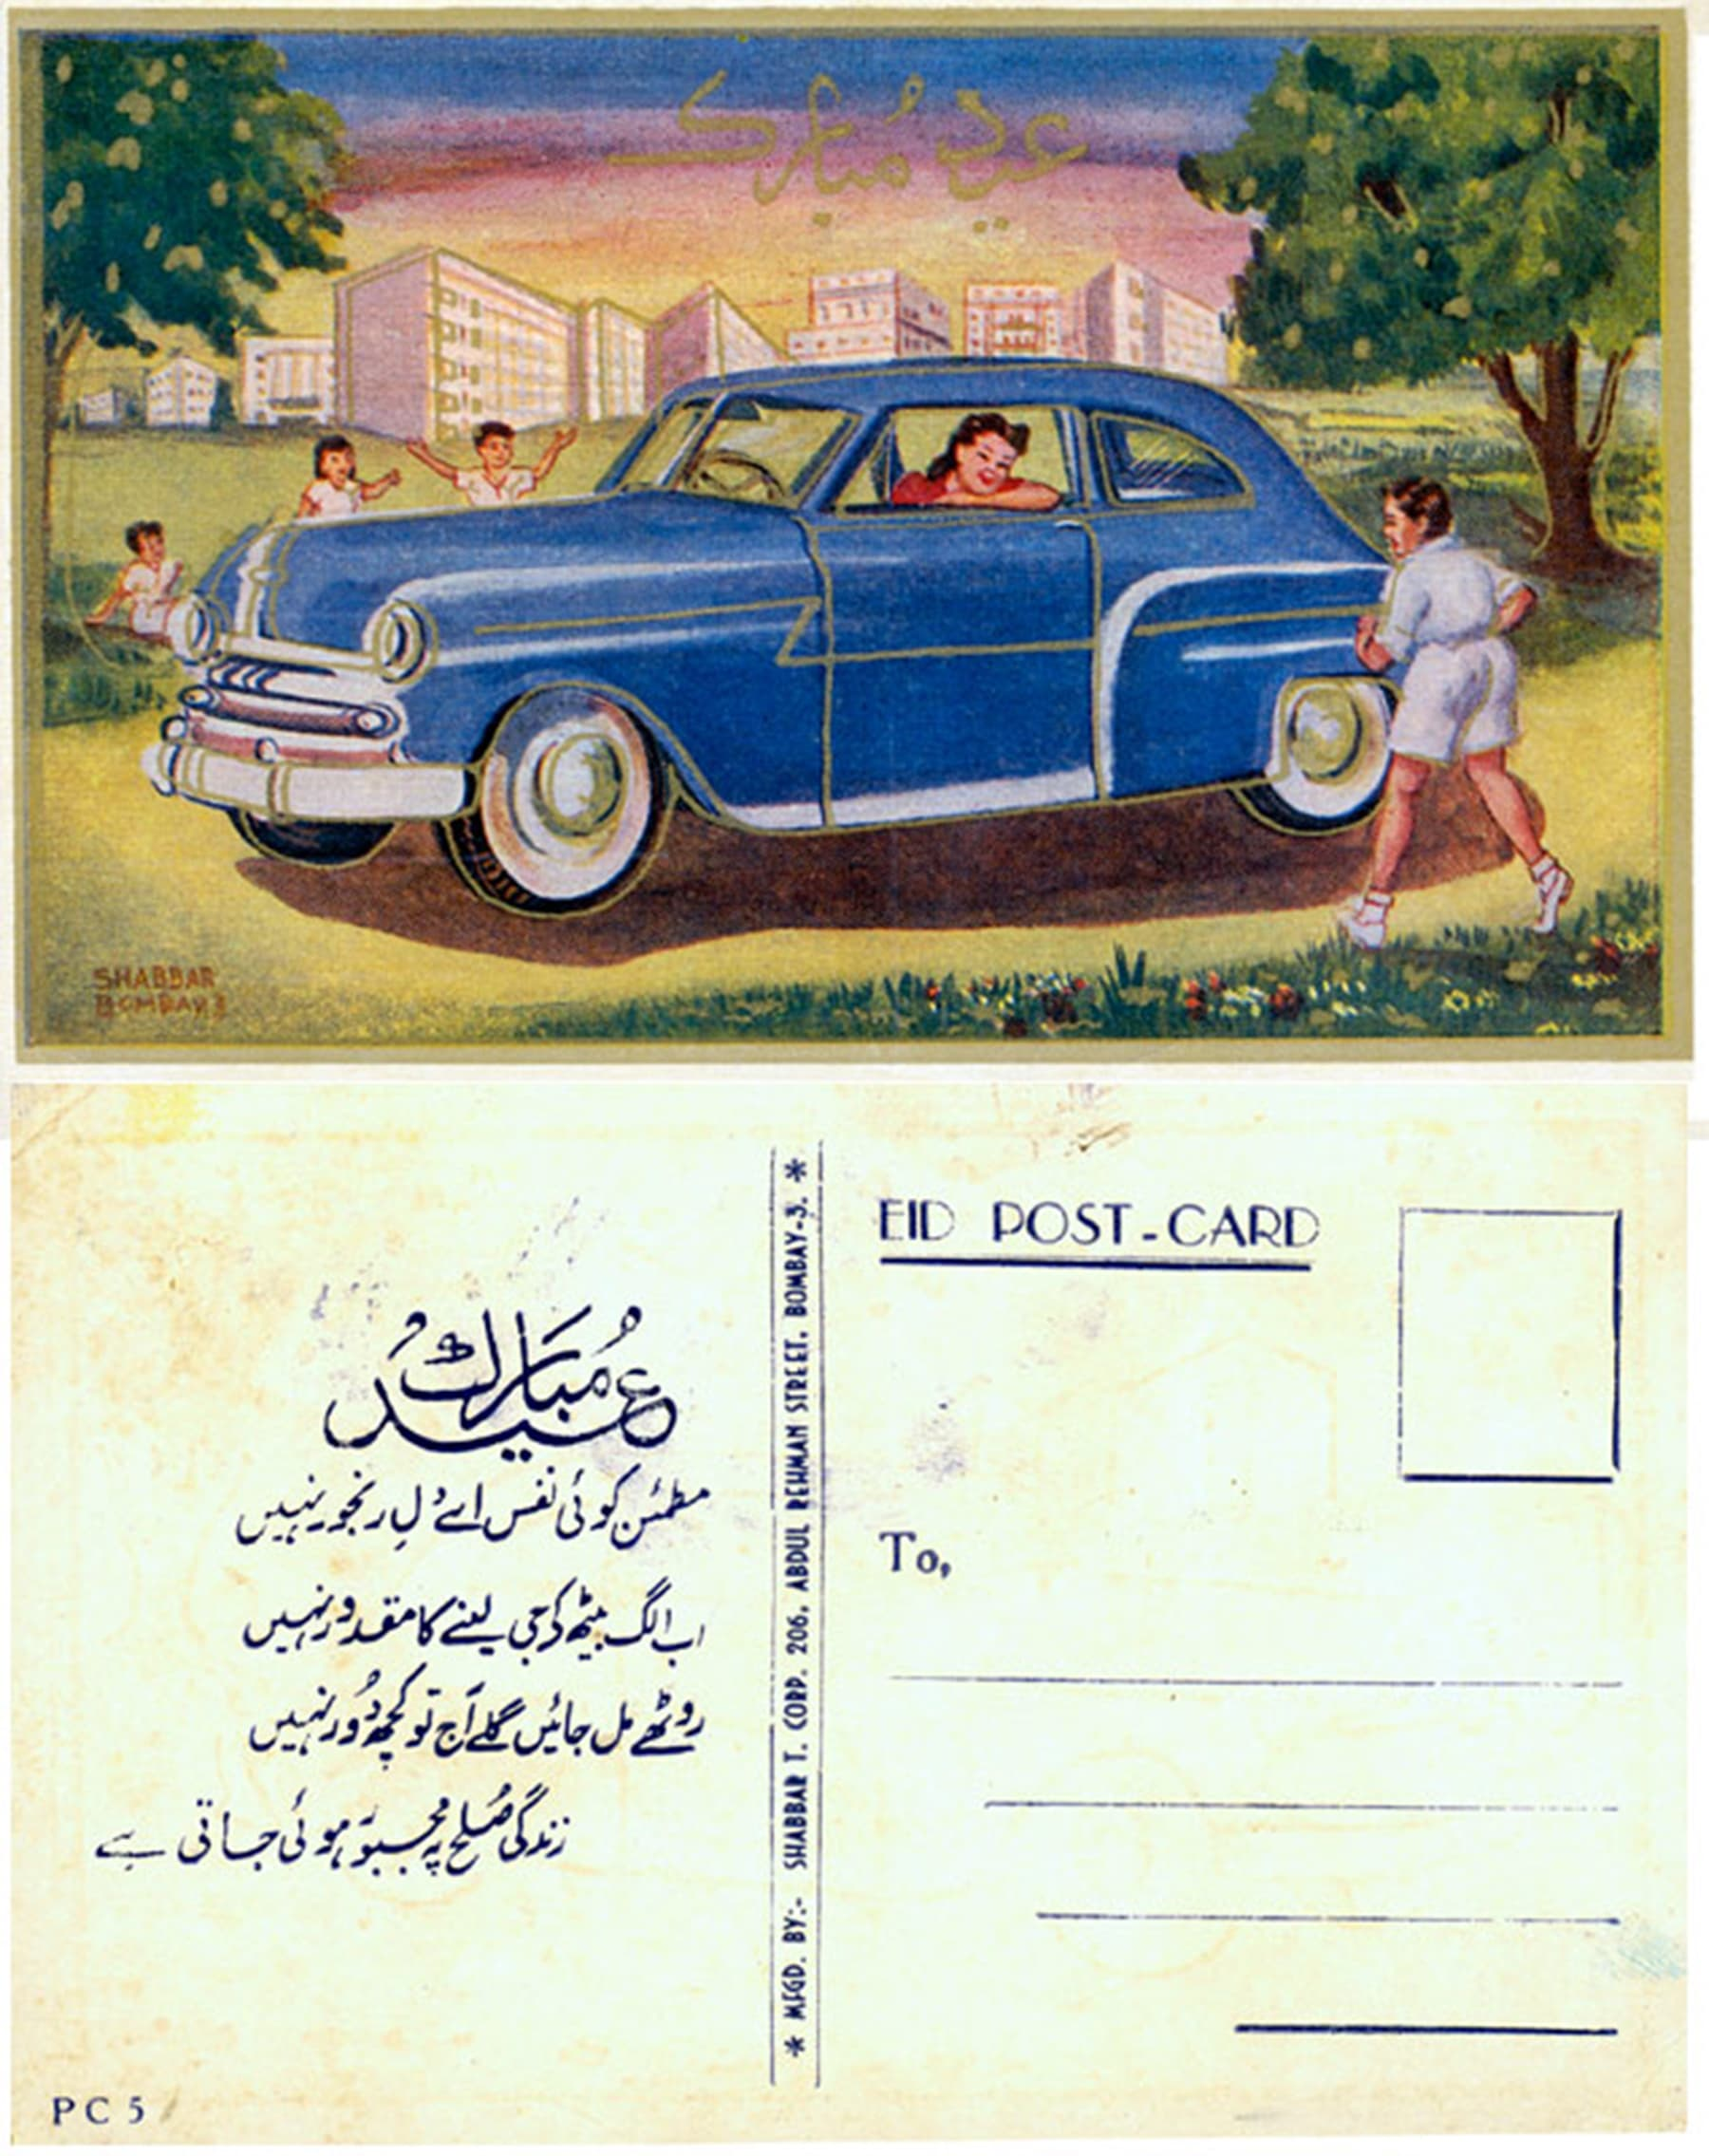 Especially for children. Eid card produced by Shabbar T. Corp. Bombay. From Omar Khan's collection.